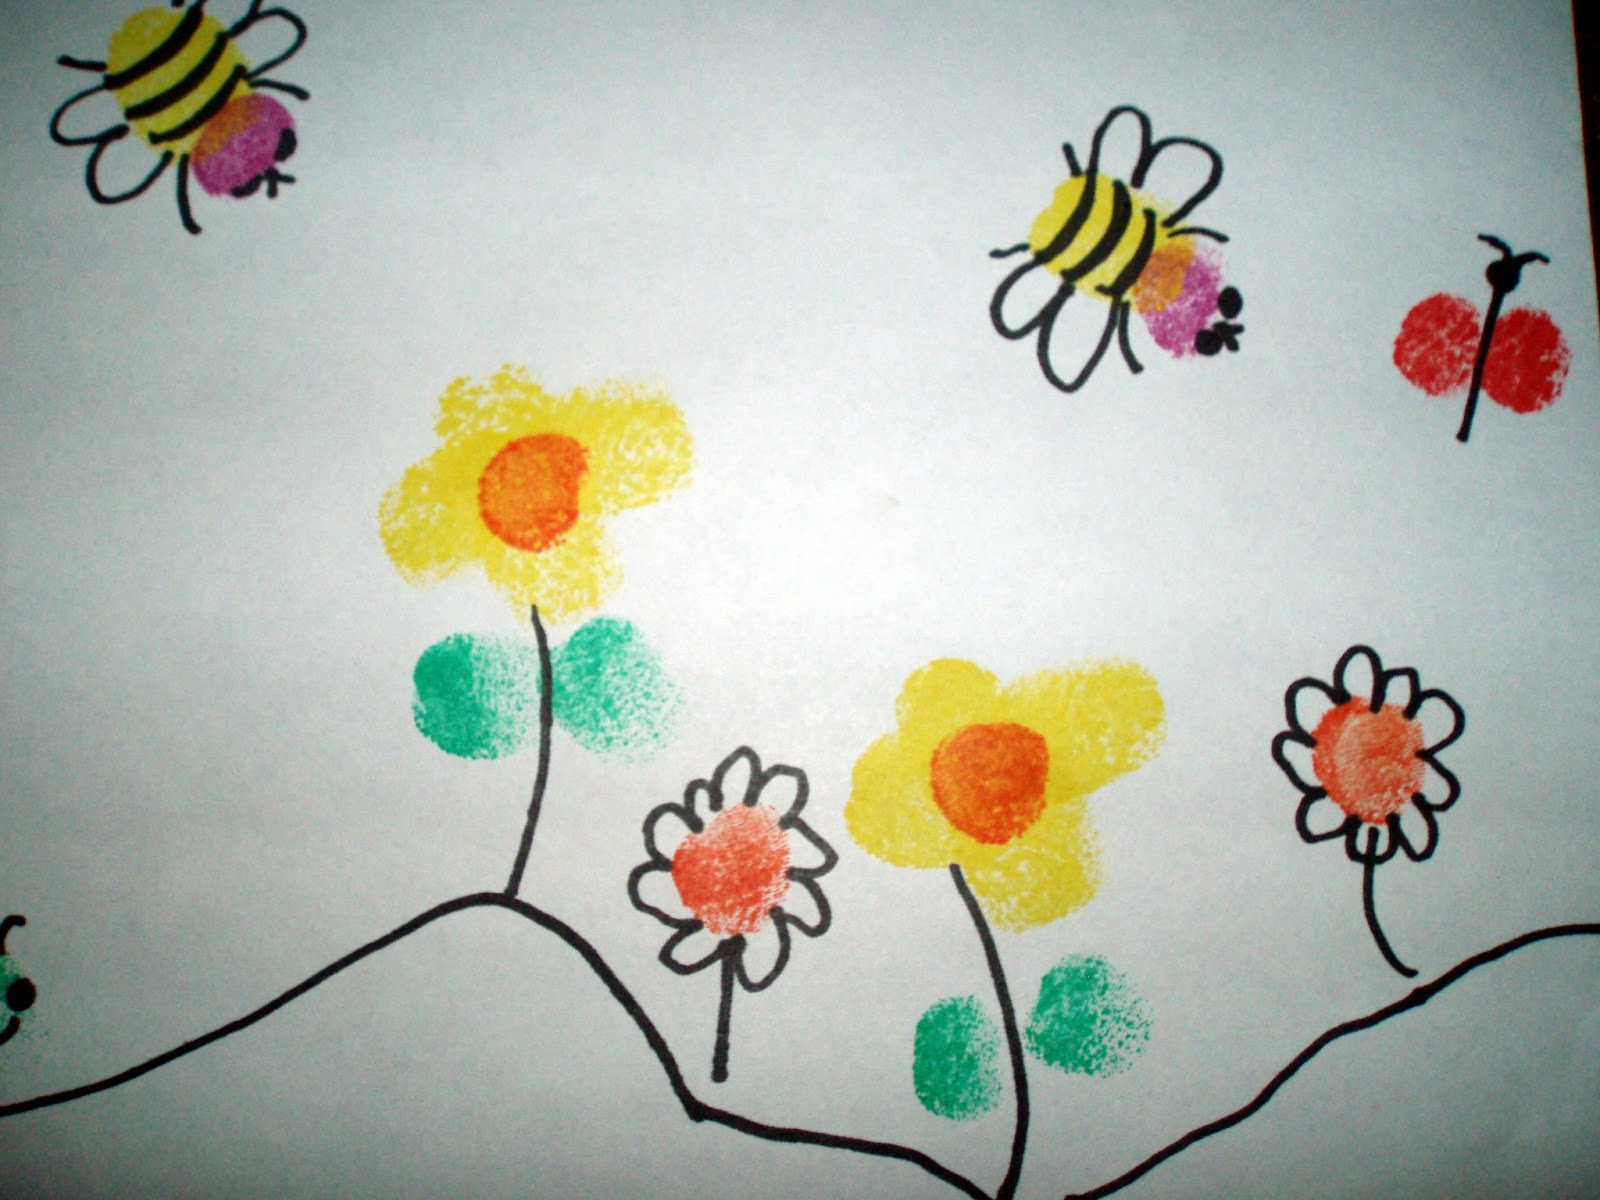 Flower paintings for kids crafts from kids tend to hold